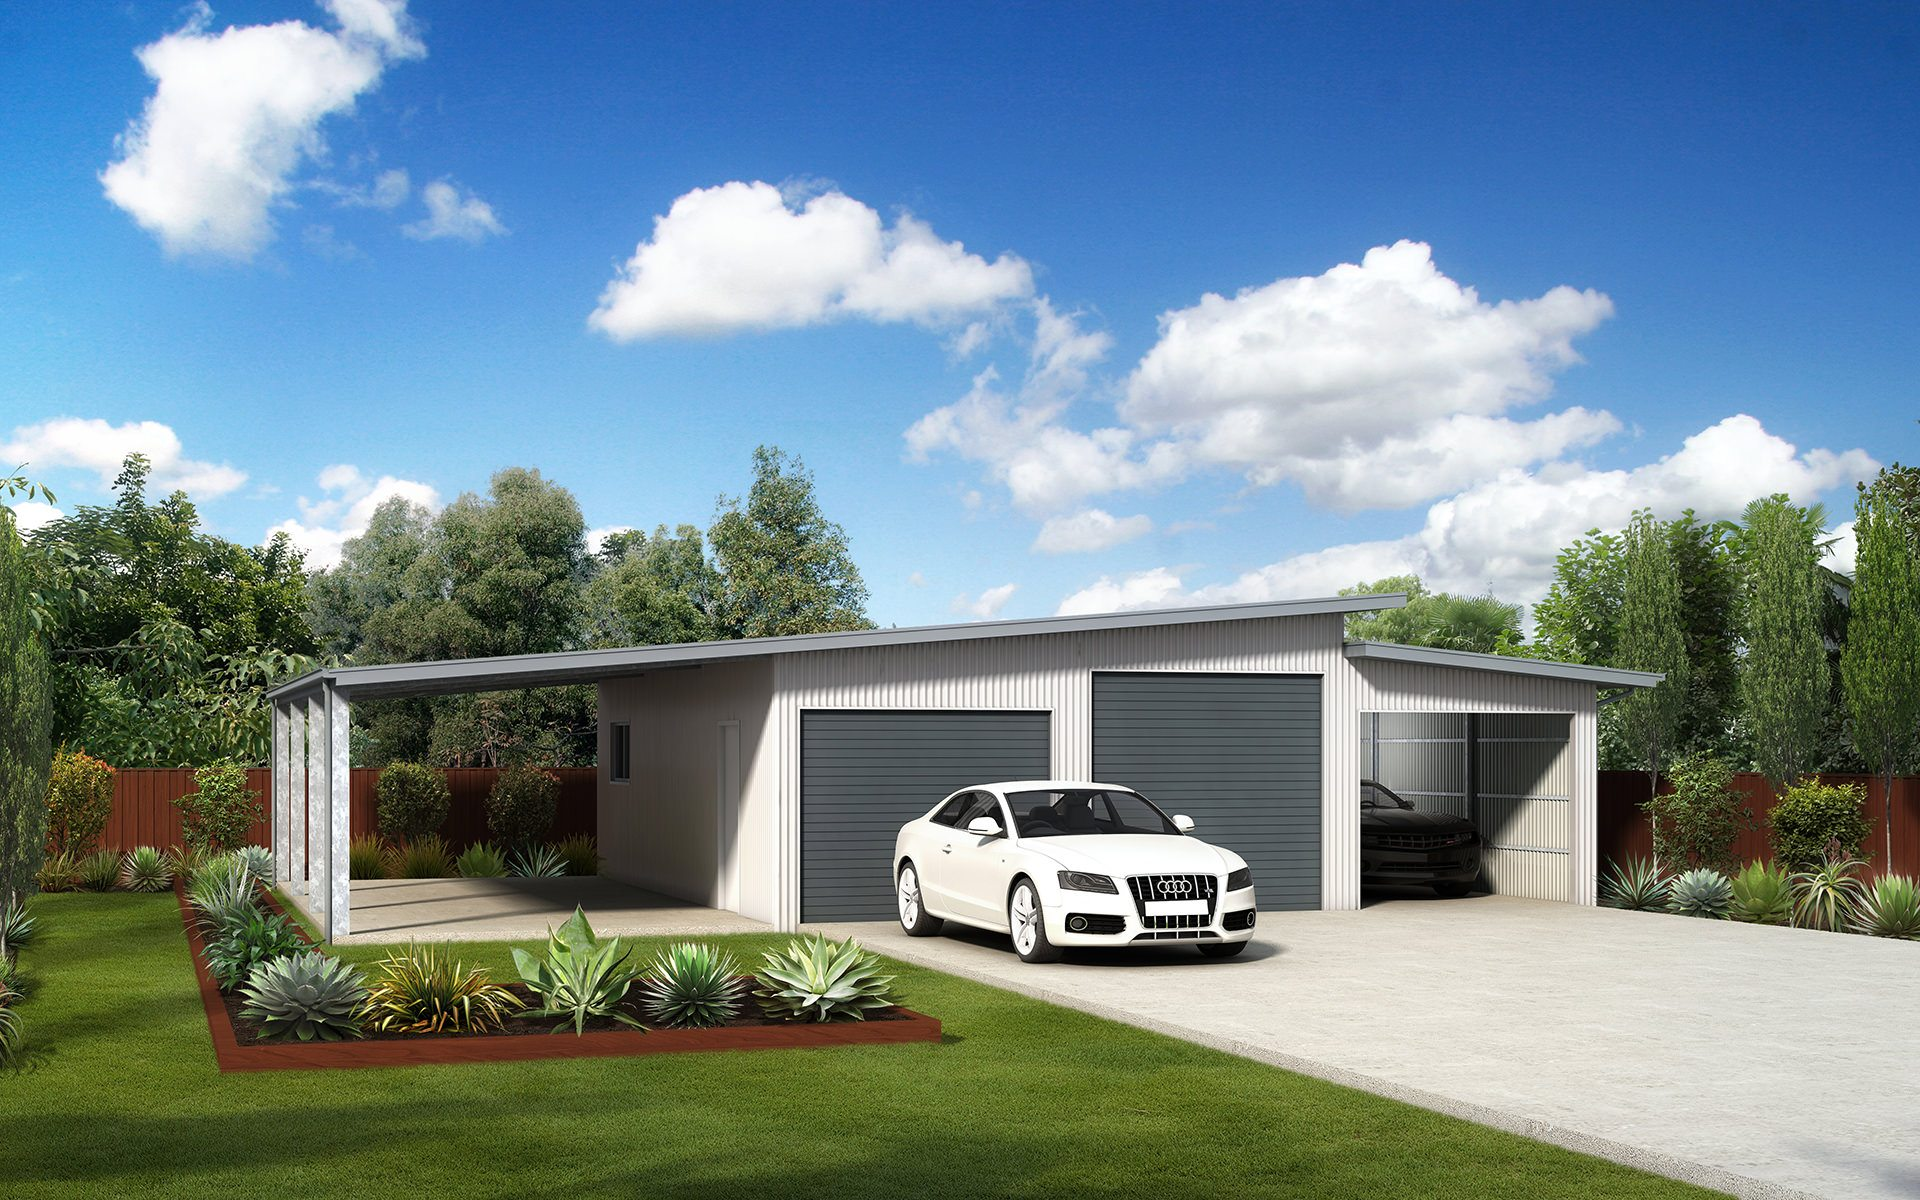 skillion roof sheds and garages ranbuild skillion roof sheds and garages